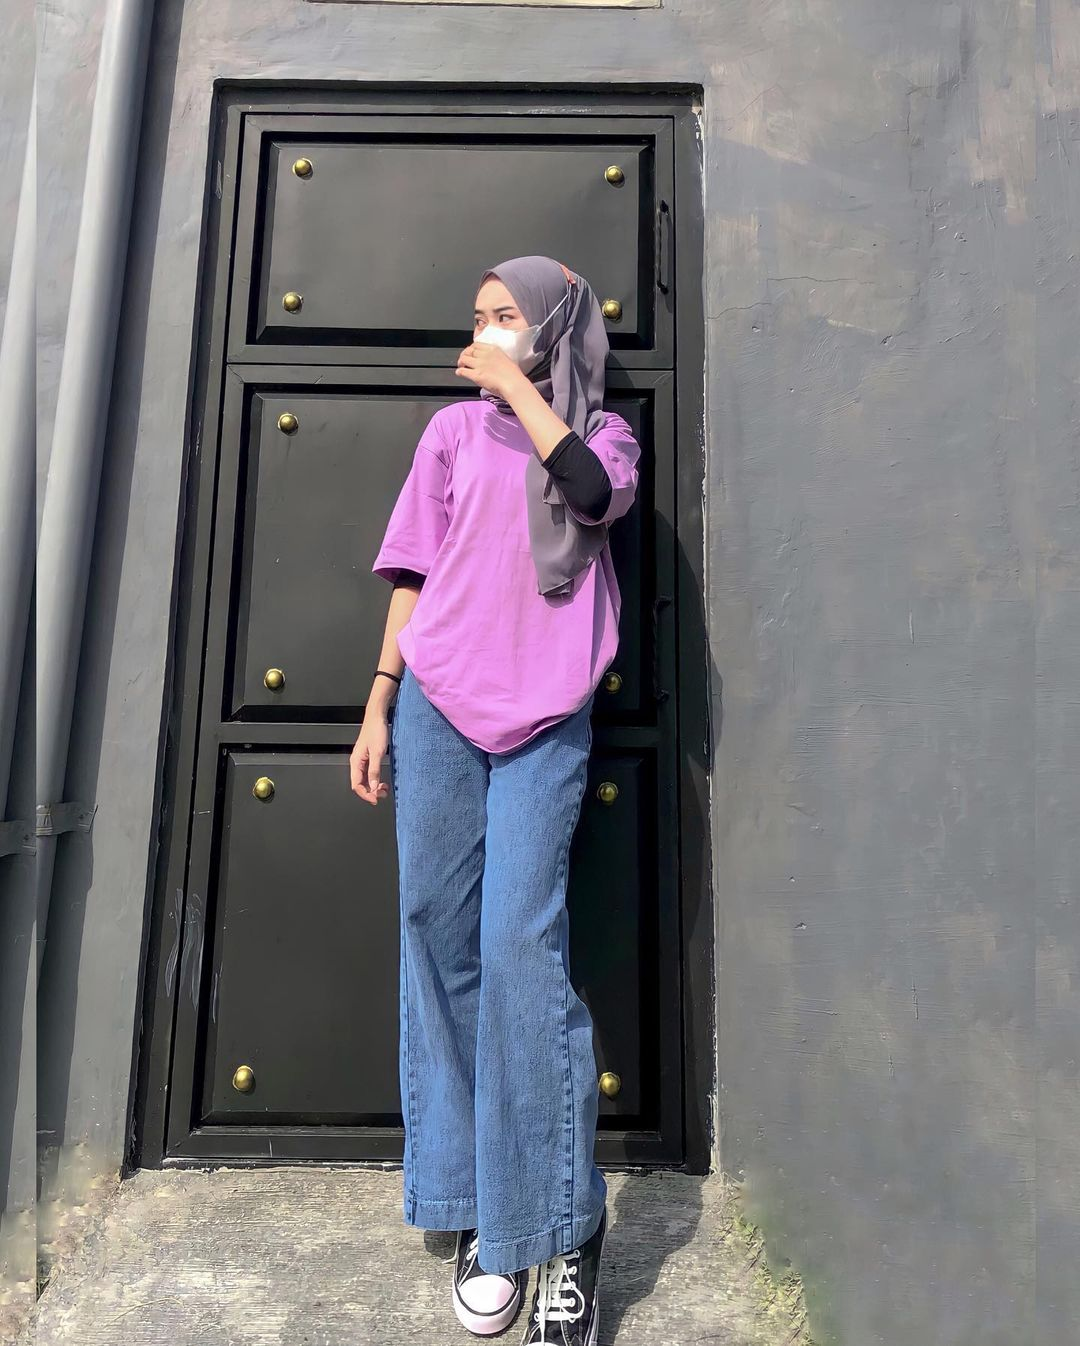 """""""Summer Vibes"""" Hijab Outfit Ideas Will Brighten Your Day!"""